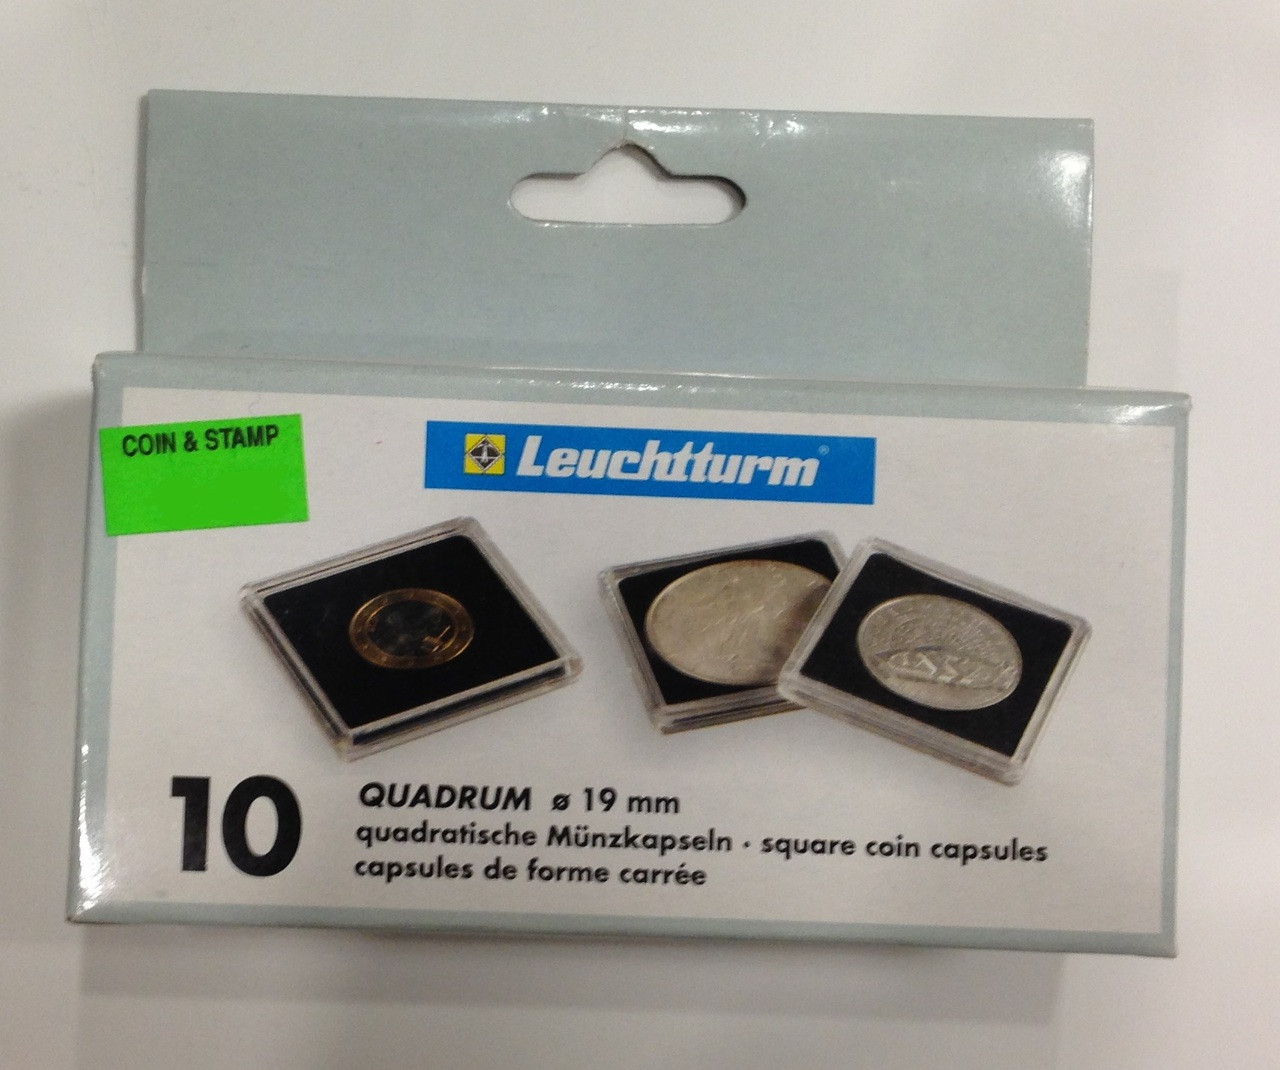 Pack Of 10 Lighthouse Quadrum 2x2 Coin Holders Capsules Size 19mm